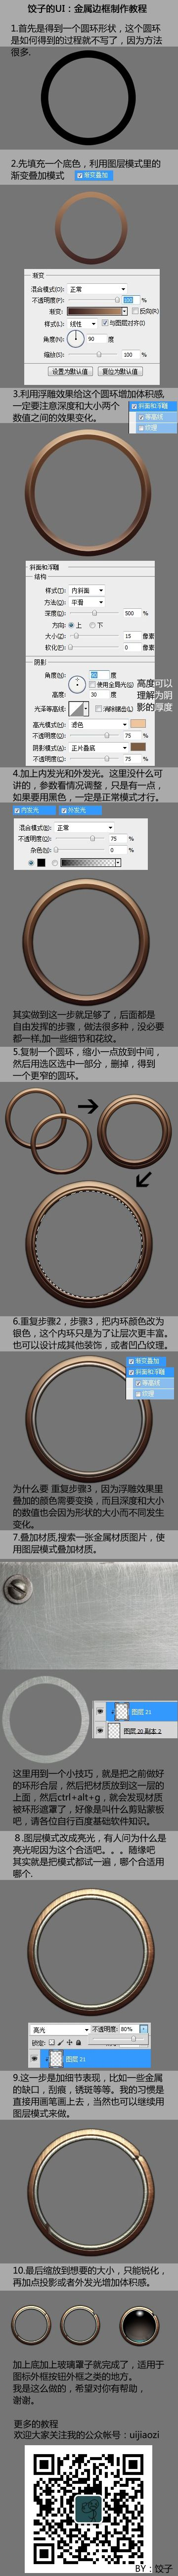 金属质感边框简易教程 | GAMEUI- ... Brushed metal ring painting drawing resource tool how to tutorial instructions | Create your own roleplaying game material w/ RPG Bard: www.rpgbard.com | Writing inspiration for Dungeons and Dragons DND D&D Pathfinder PFRPG Warhammer 40k Star Wars Shadowrun Call of Cthulhu Lord of the Rings LoTR + d20 fantasy science fiction scifi horror design | Not our art: click artwork for source